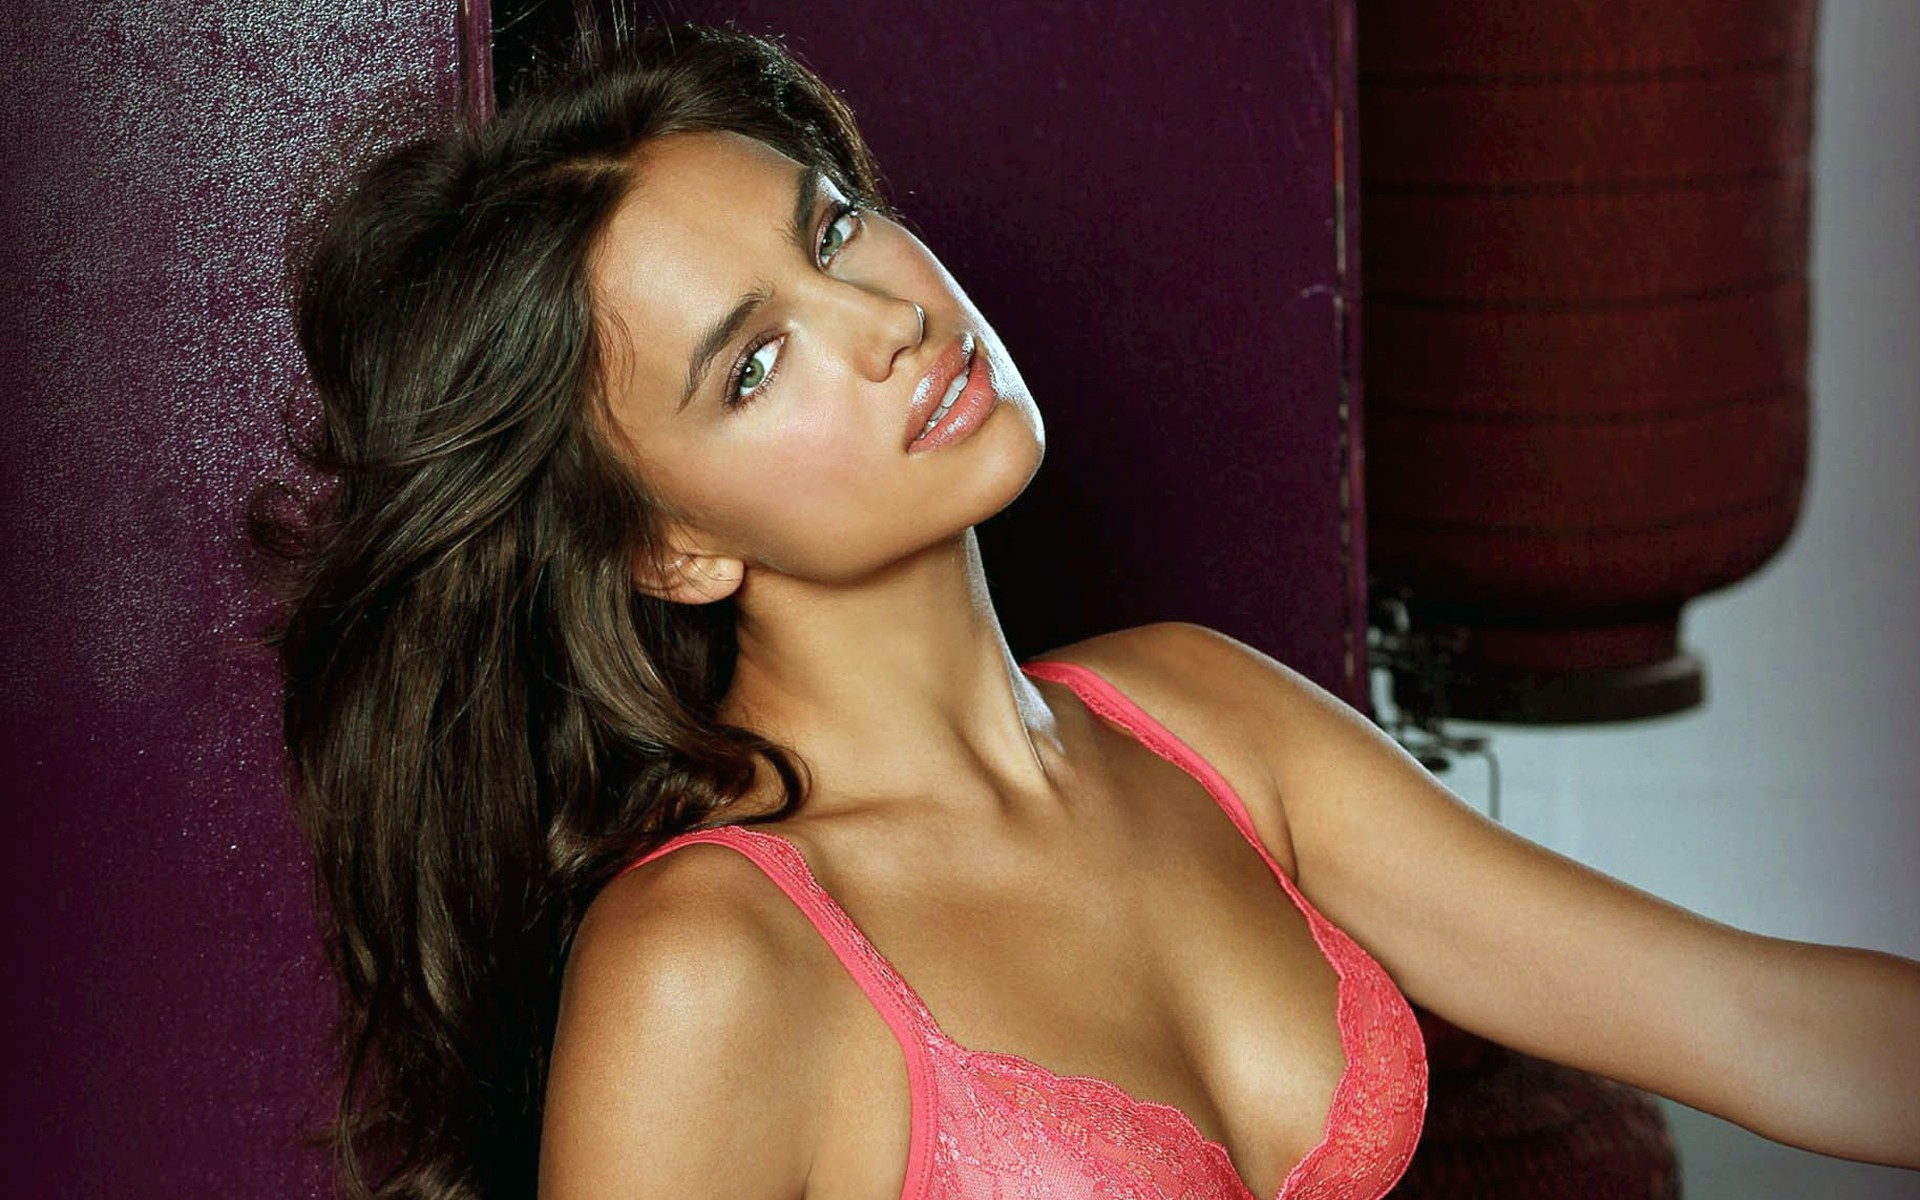 lingerie models faces irina HD Wallpaper